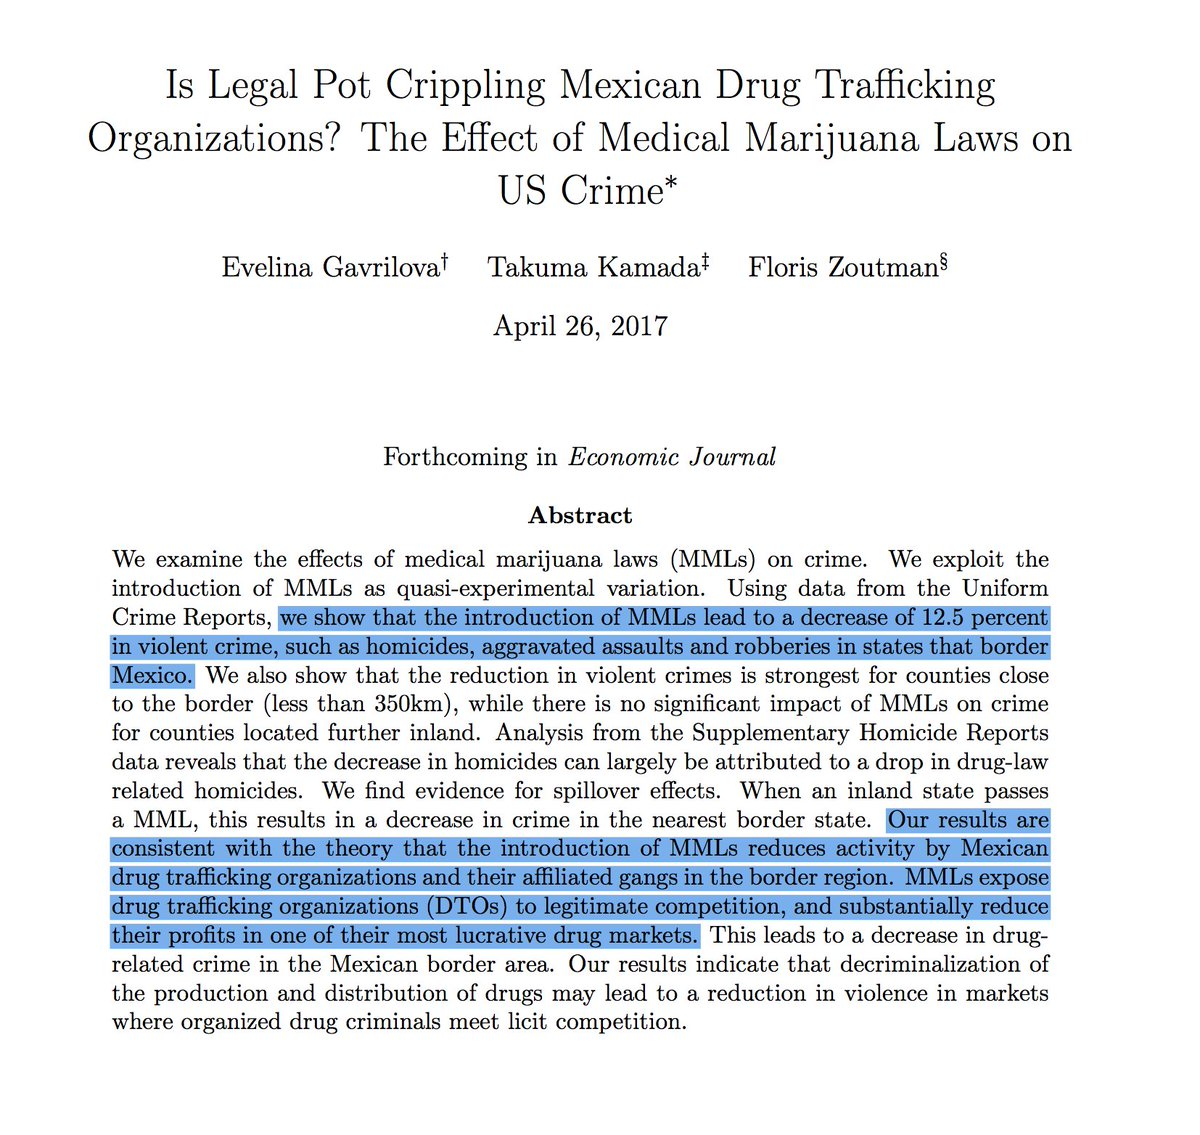 gangs and relationships with drugs and violence criminology essay Criminology, scientific study of the nonlegal aspects of crime and delinquency, including its causes, correction, and prevention, from the viewpoints of such diverse disciplines as anthropology, biology, psychology and psychiatry, economics, sociology, and statistics.